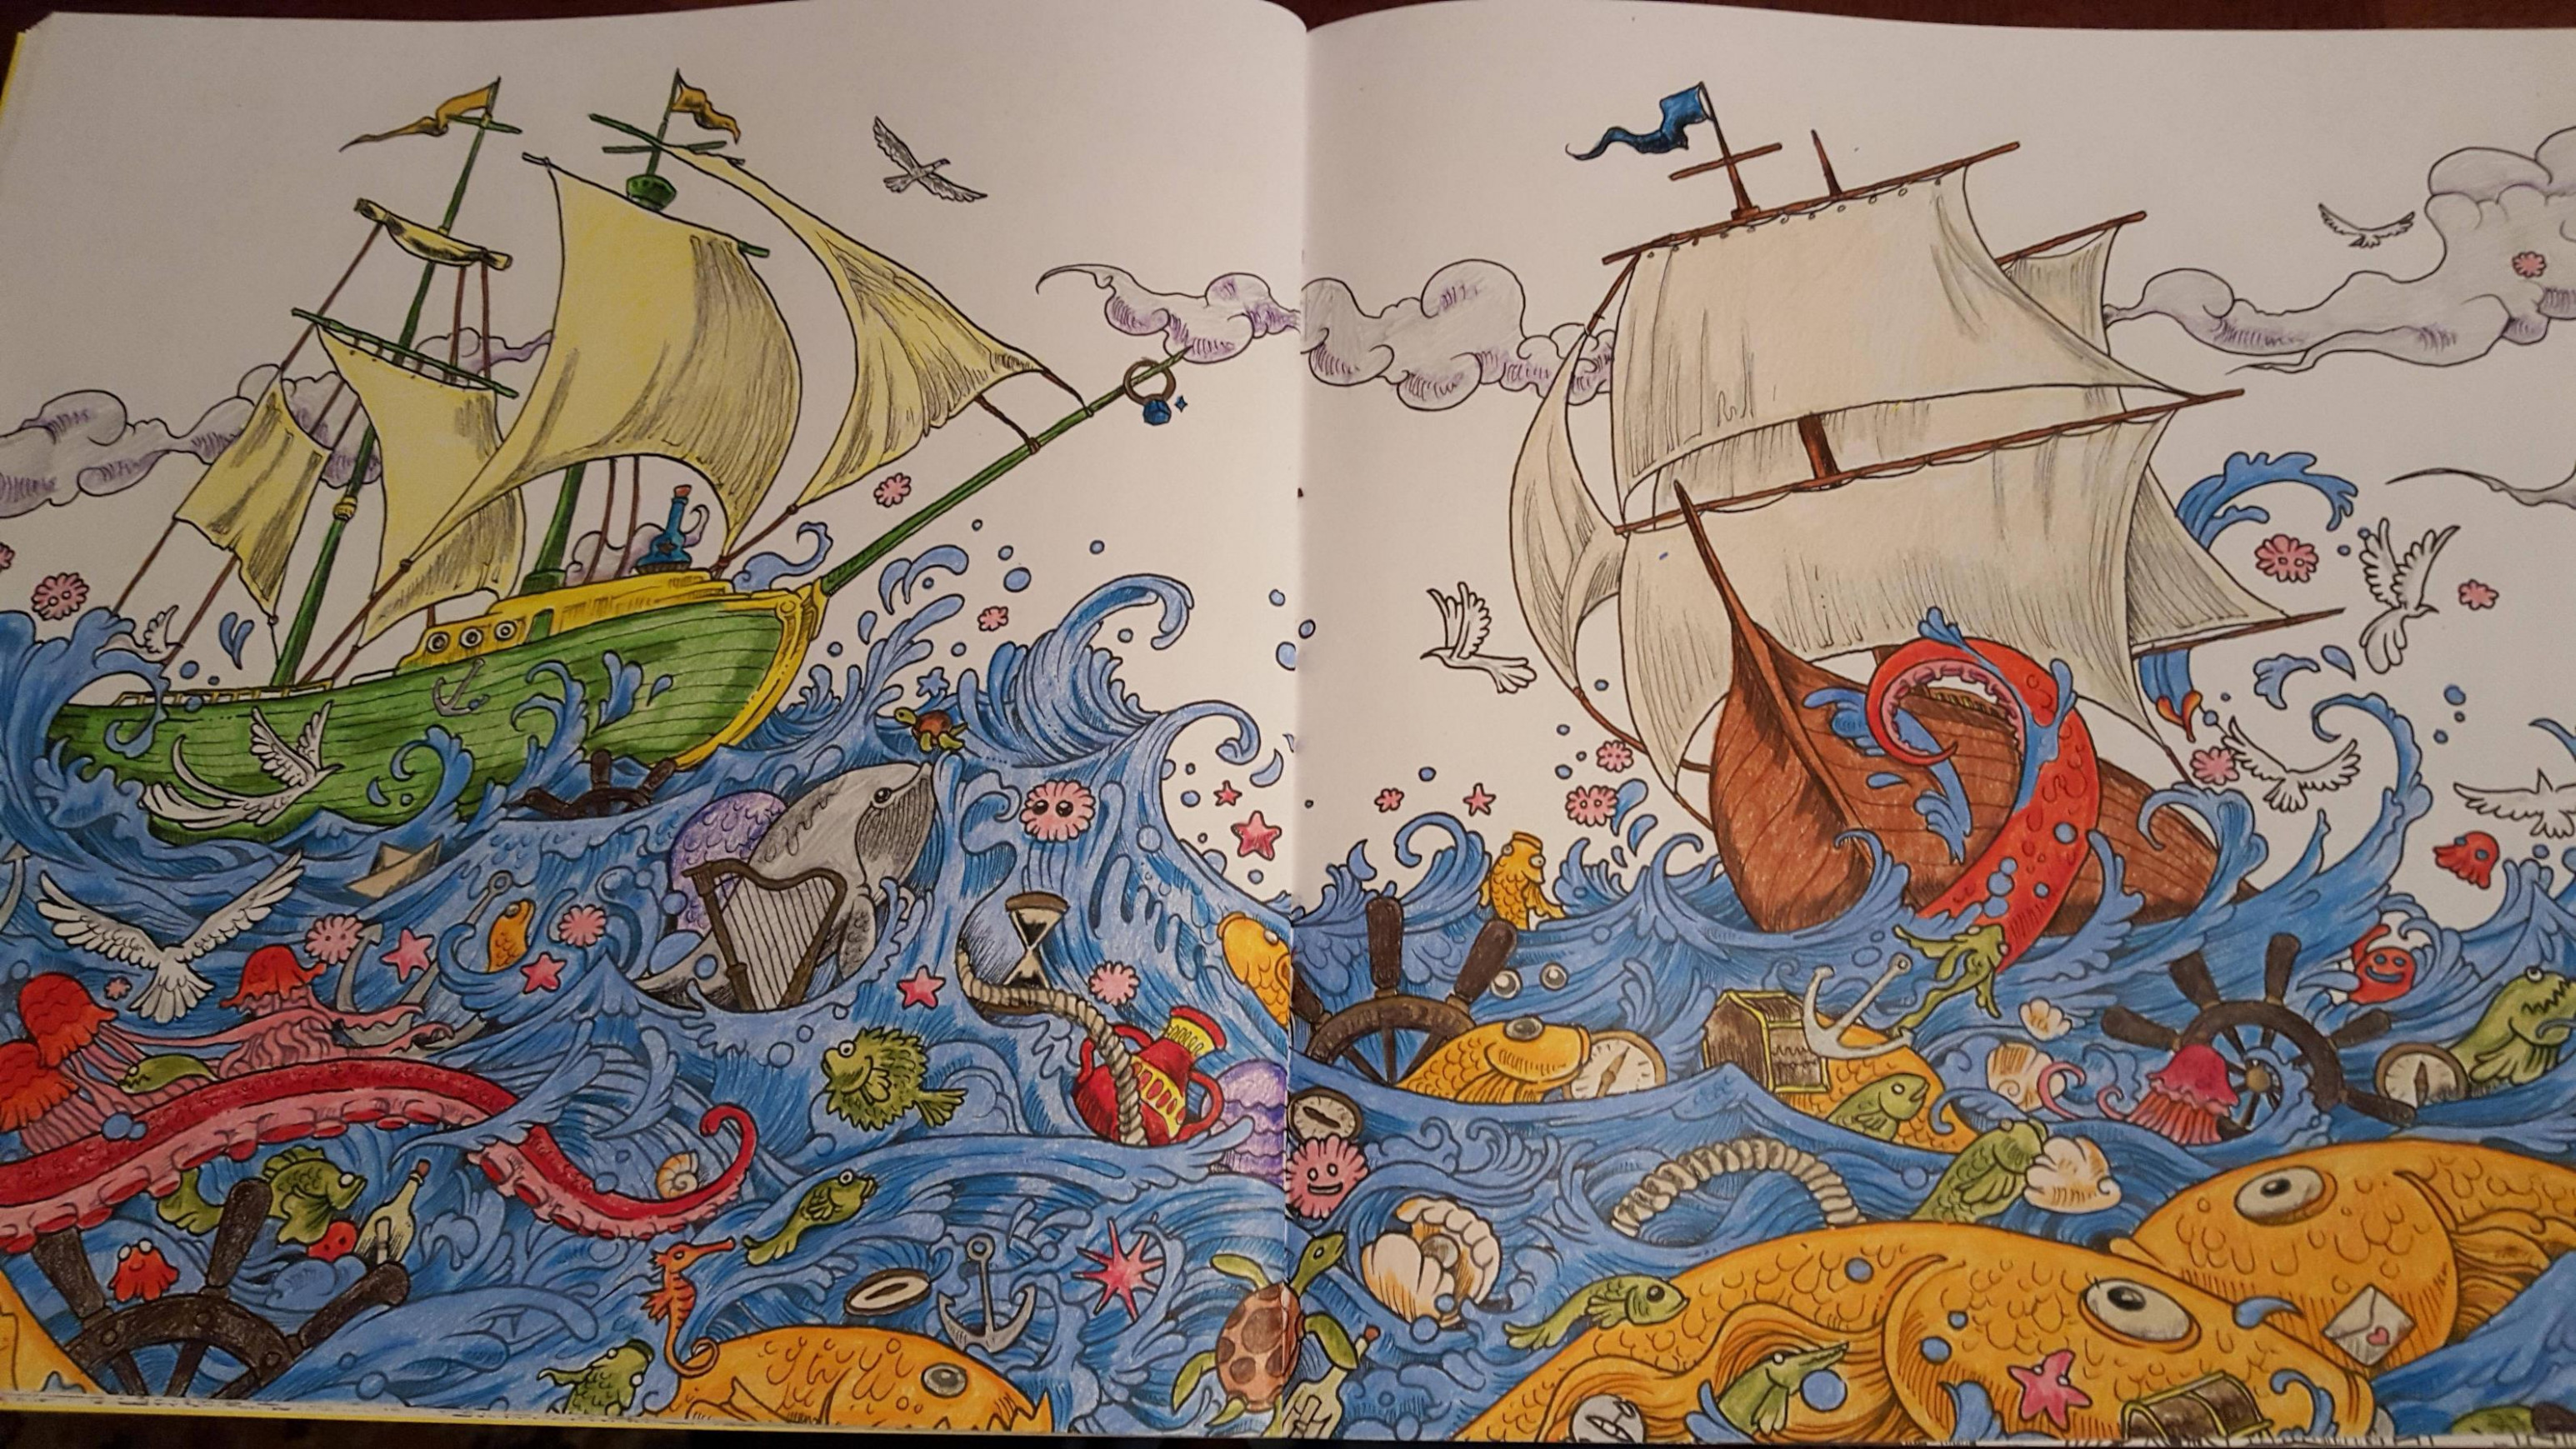 Ships - Imagimorphia colouring book - Album on Imgur